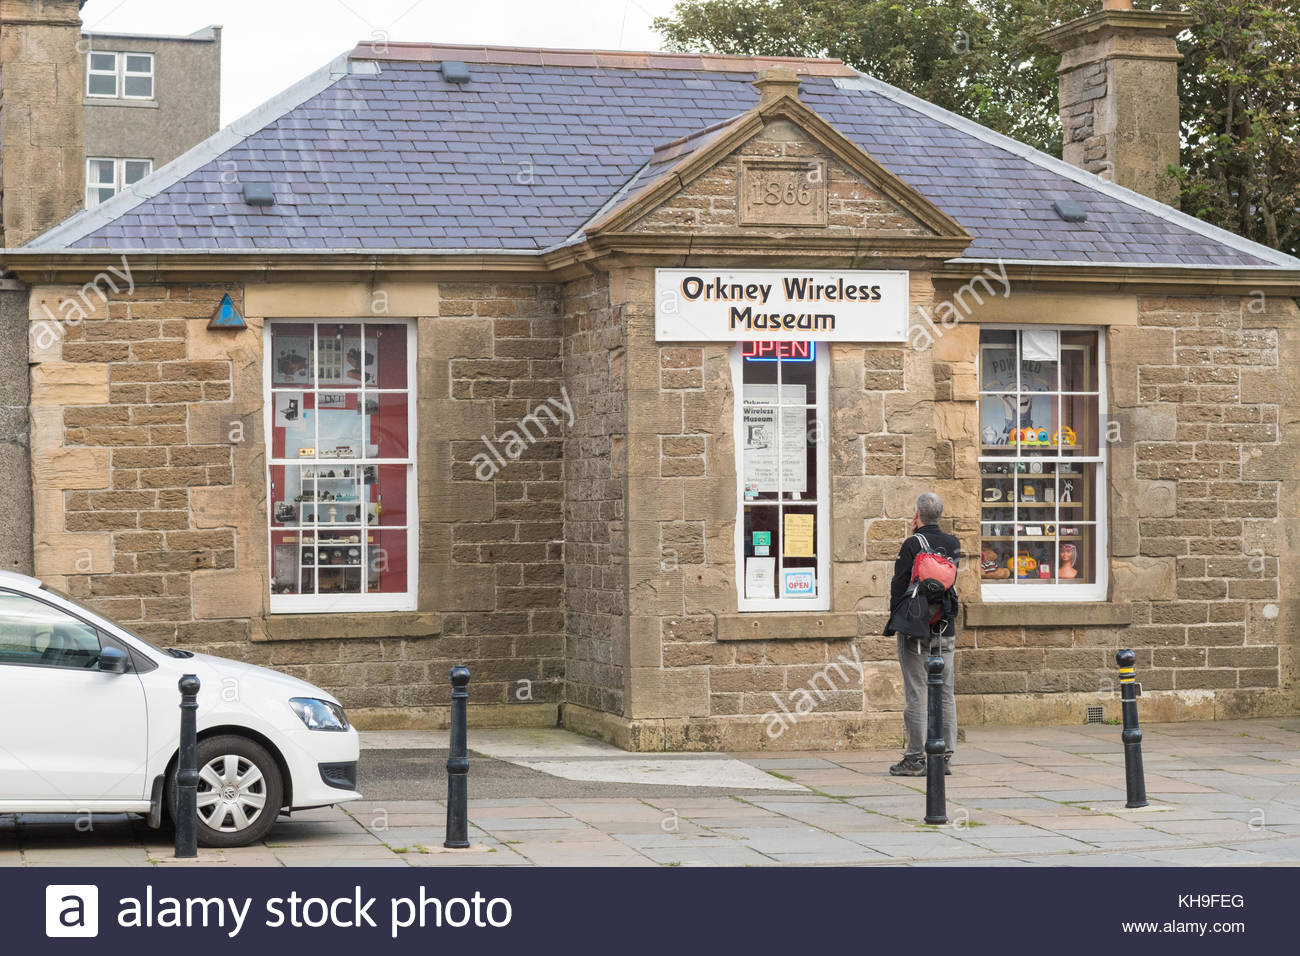 Orkney Wireless Museum Orkney and Shetland Islands, Orkney Museum Stock Photos & Orkney Museum Stock Images - Alamy